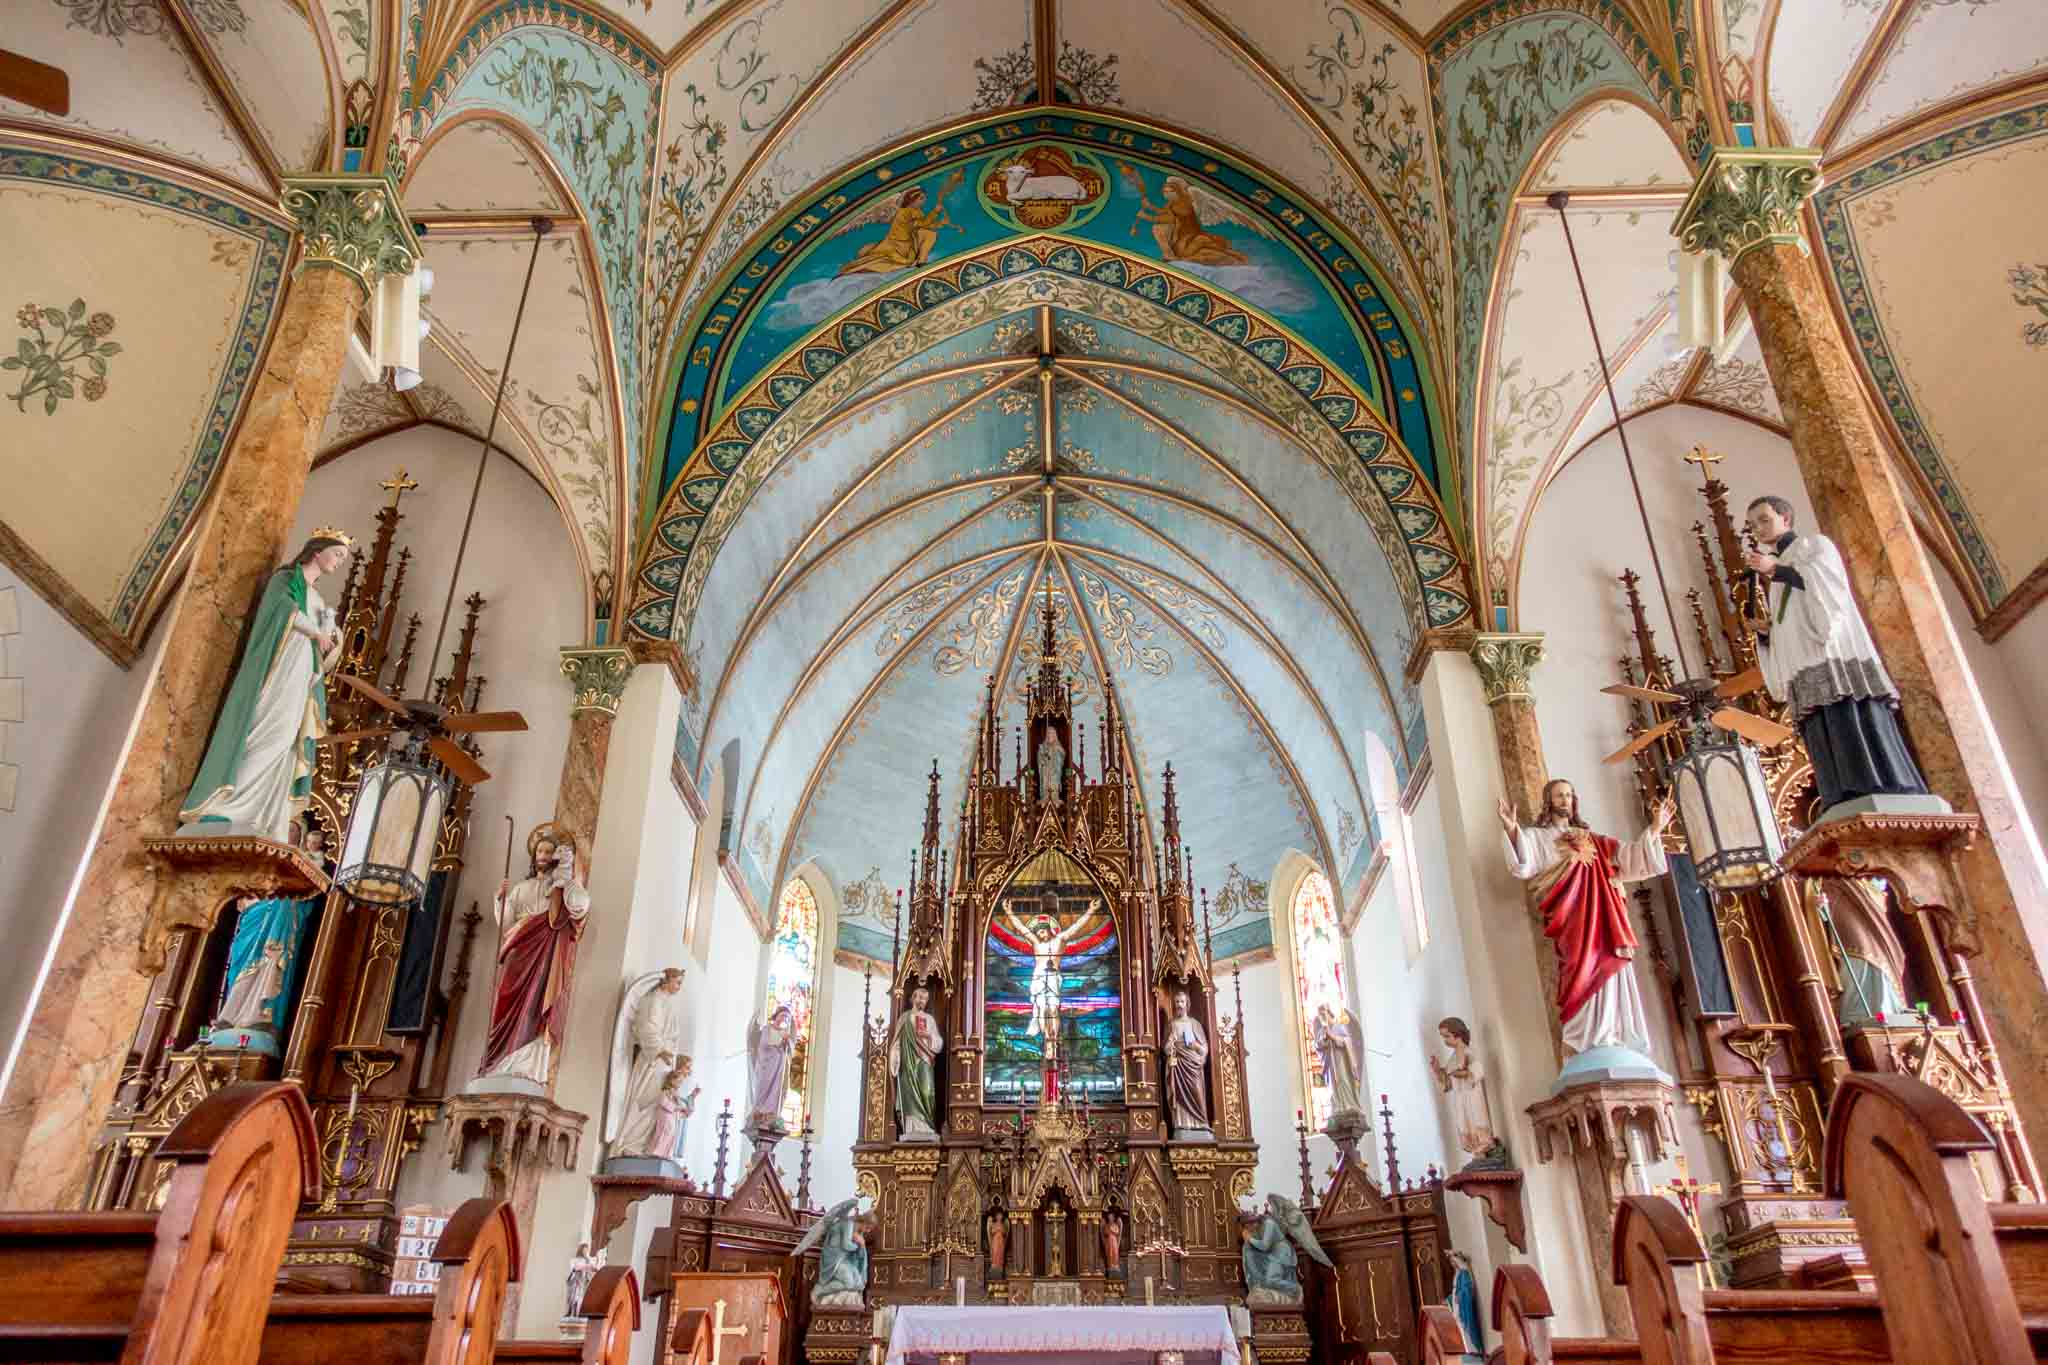 Sanctuary of St. Mary's Catholic Church in High Hill, one of the Schulenburg TX painted churches